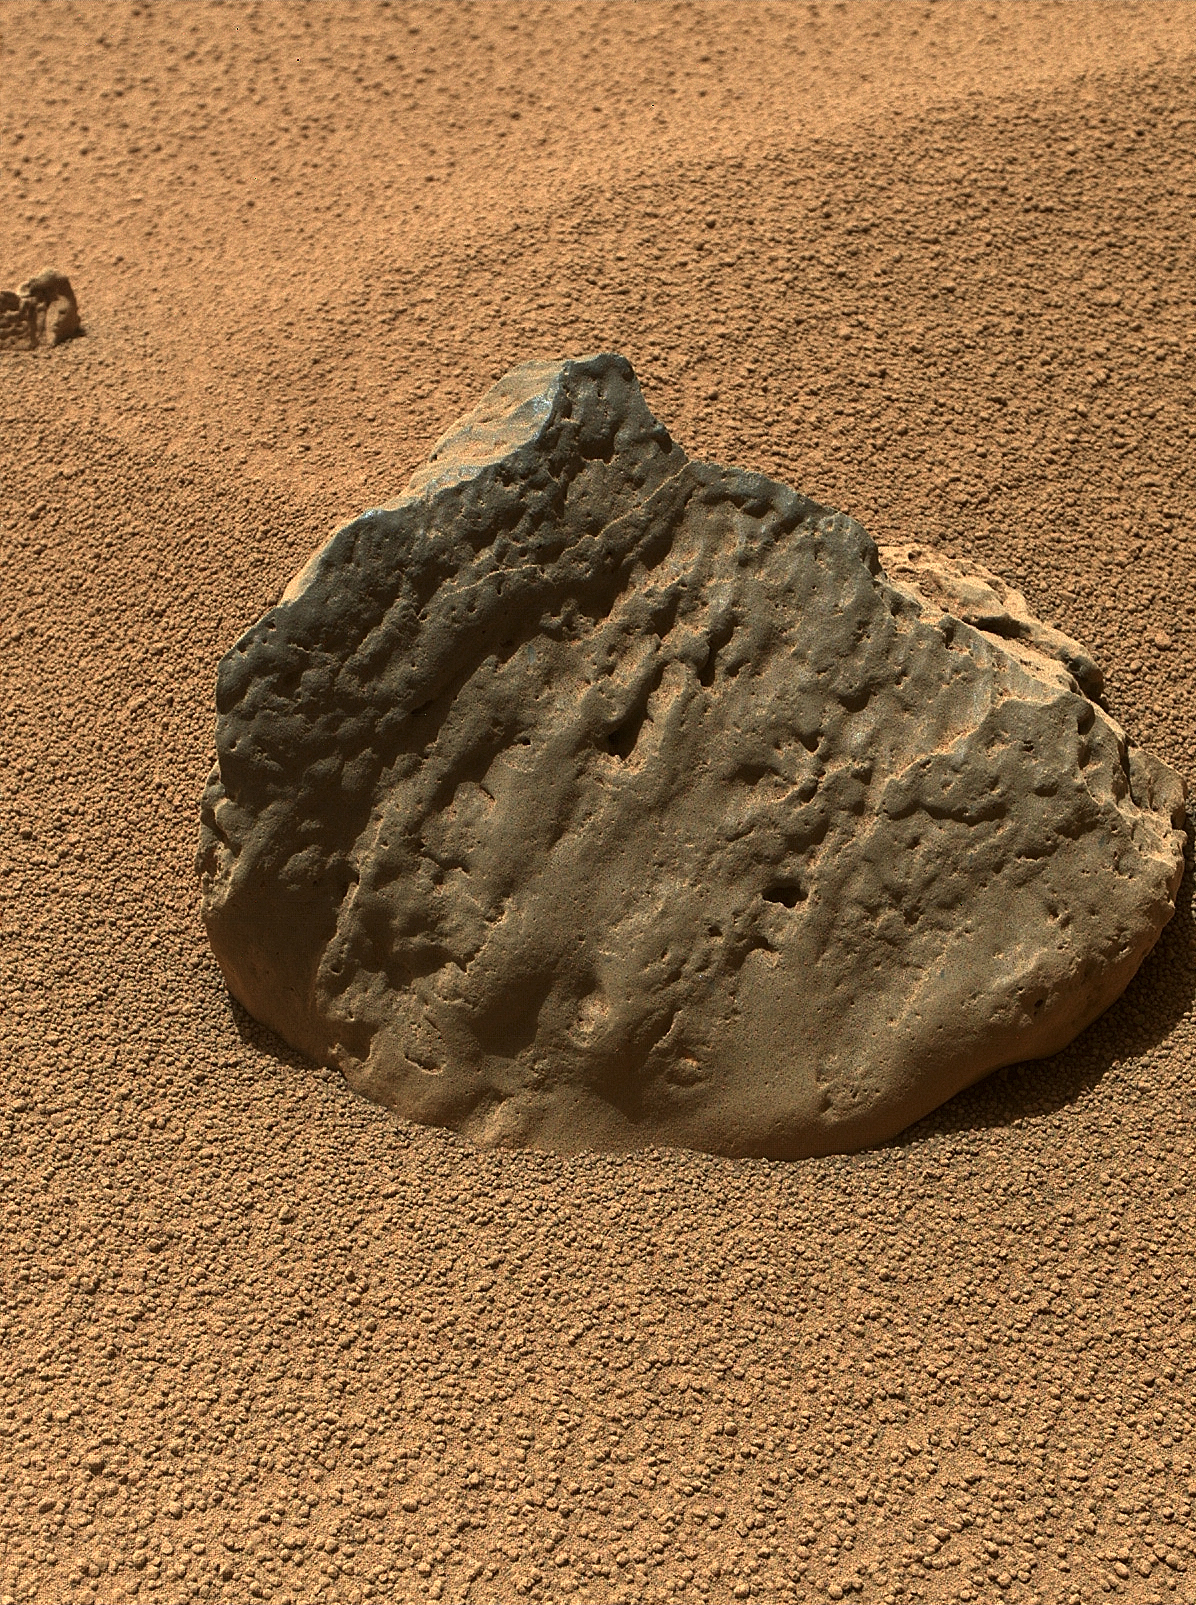 rock on mars by rover - photo #30